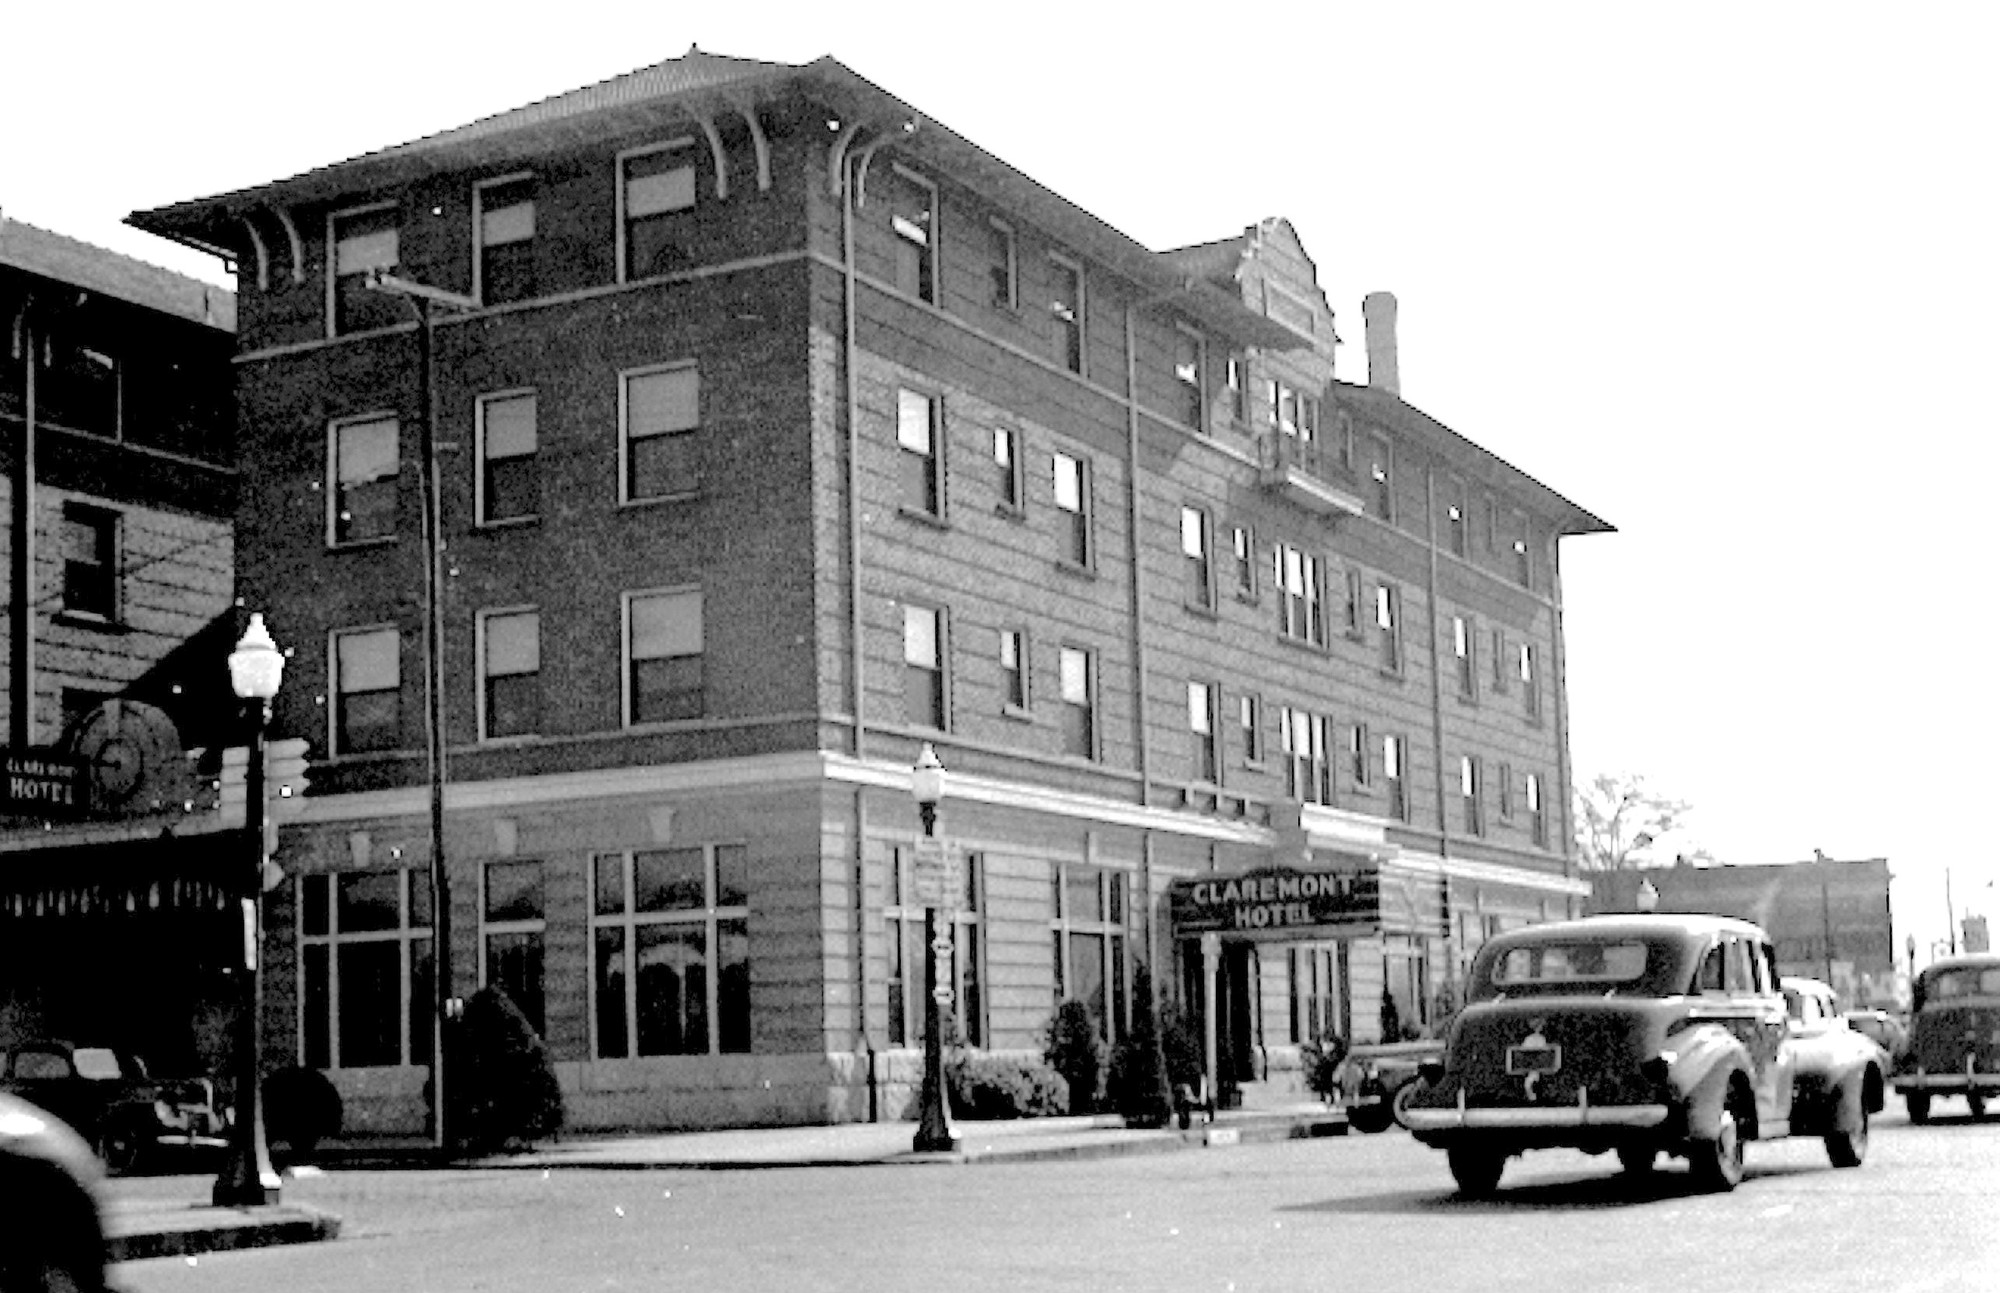 The Claremont Hotel at Bartlette and South Main streets.